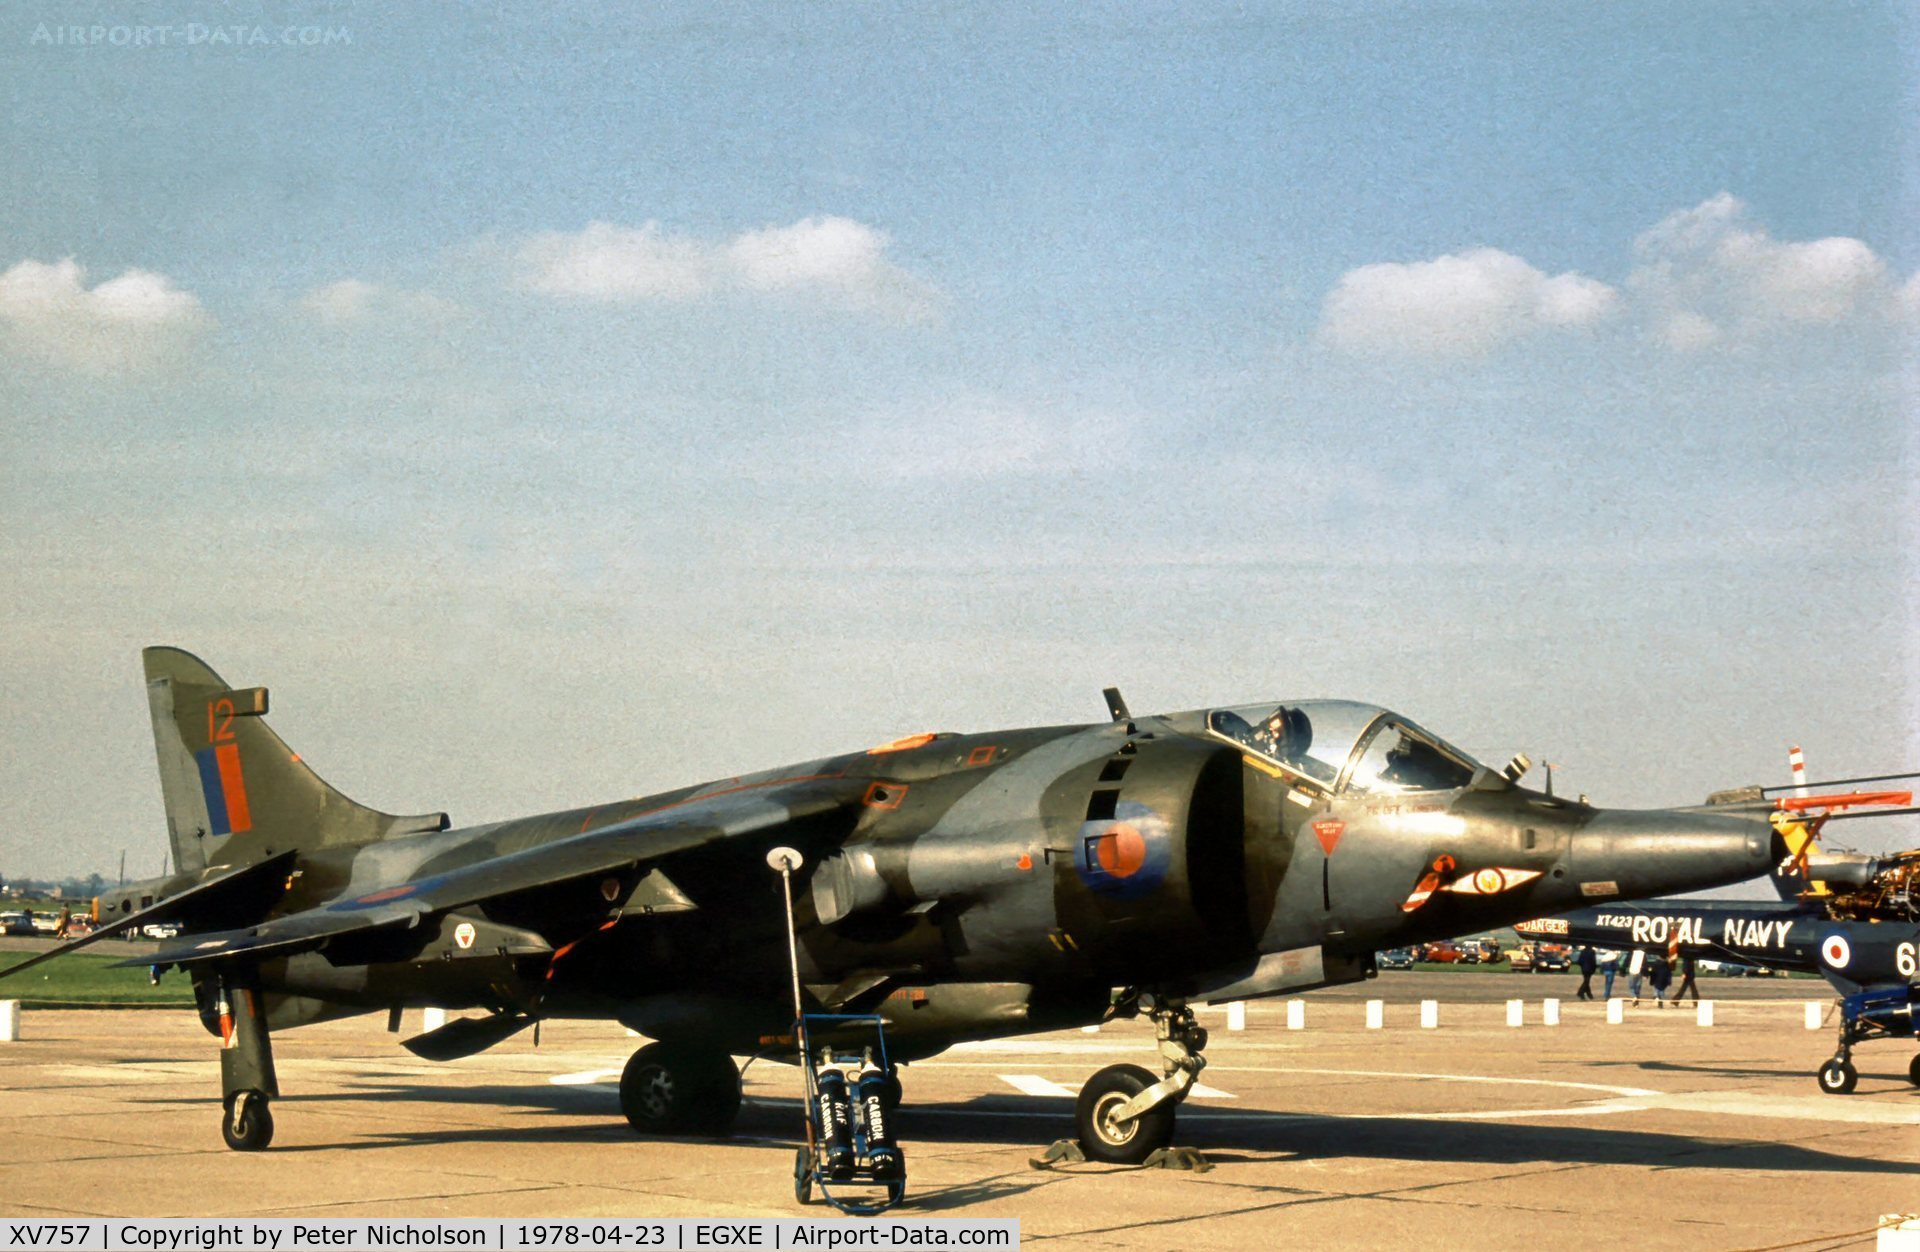 XV757, 1969 Hawker Siddeley Harrier GR.3 C/N 712020, Harrier GR.3 of 1 Squadron on display at the 1978 Leeming Open Day.